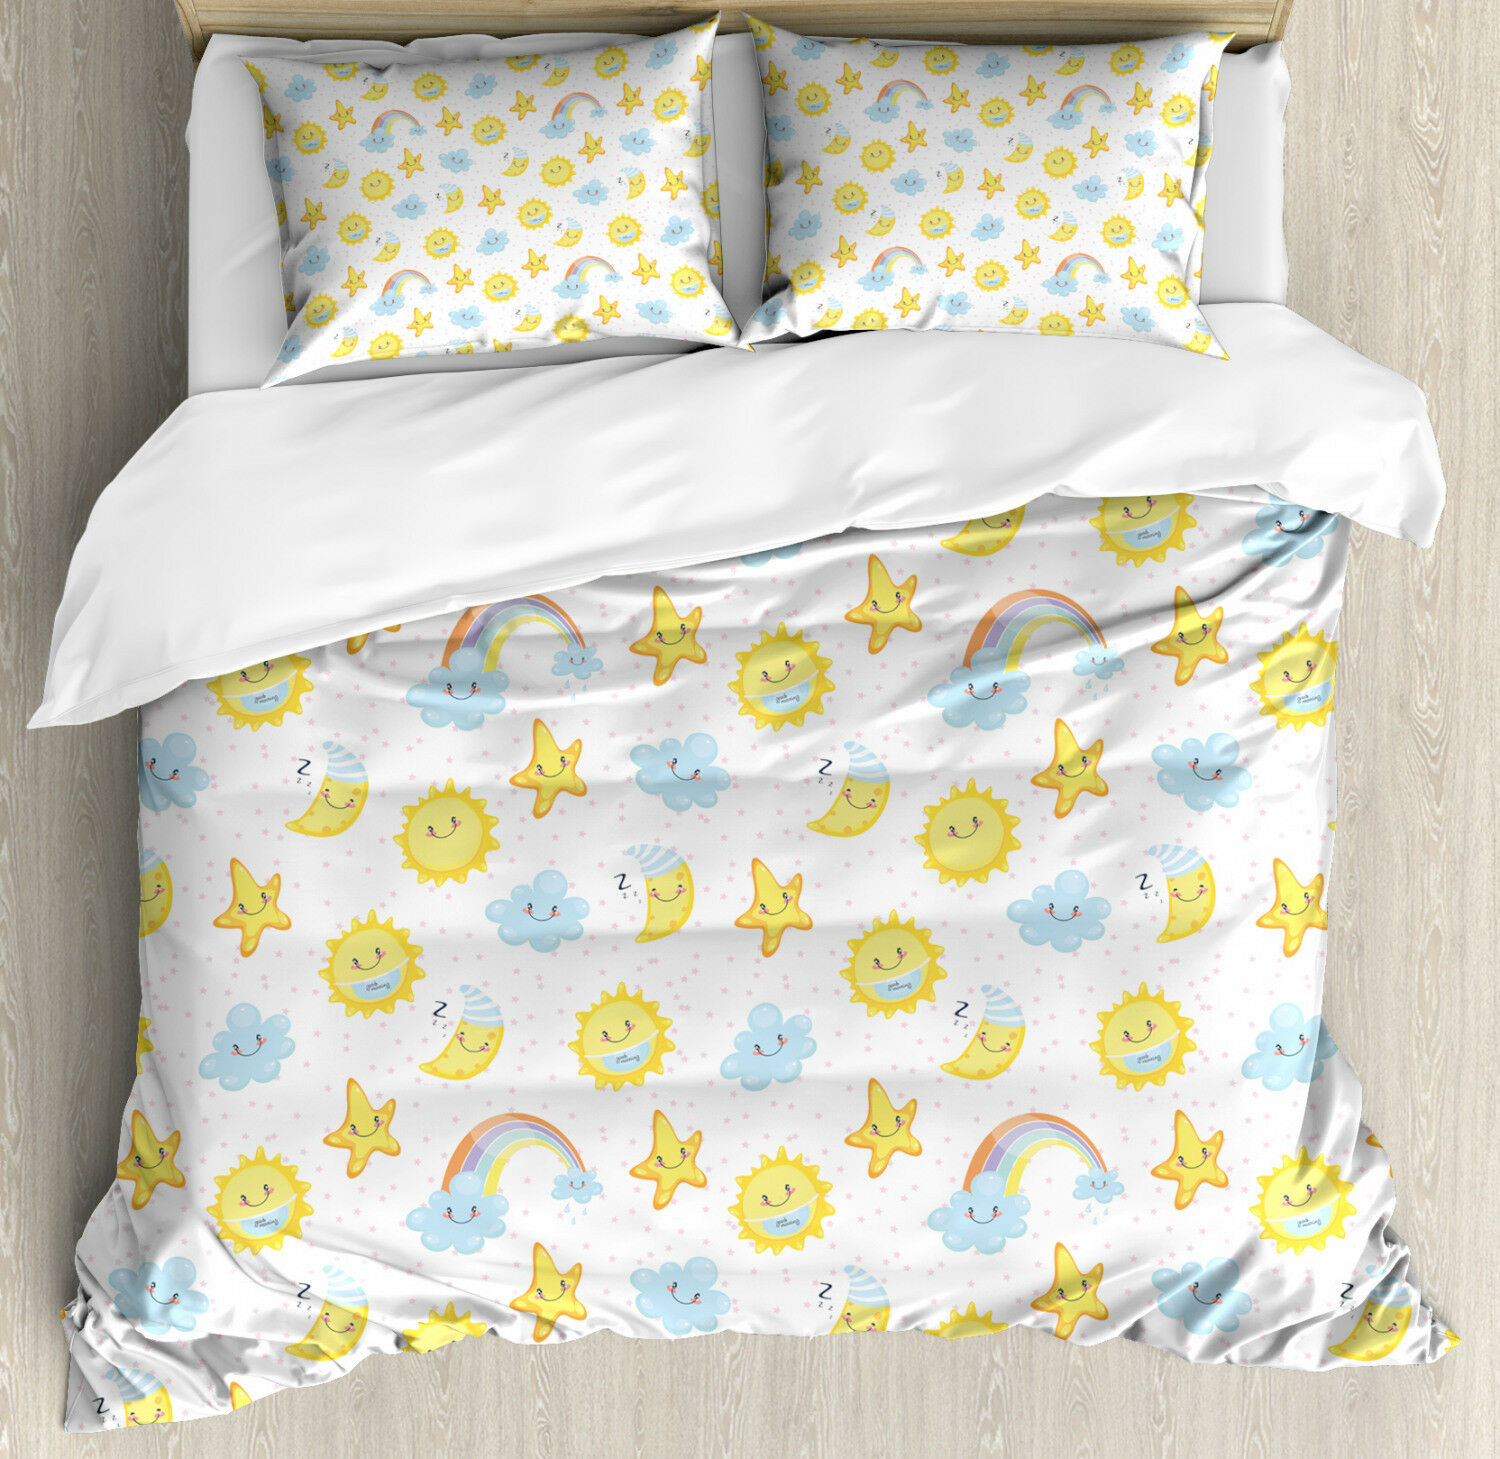 Kids Duvet Cover Set with Pillow Shams Happy Moons Stars Clouds Print